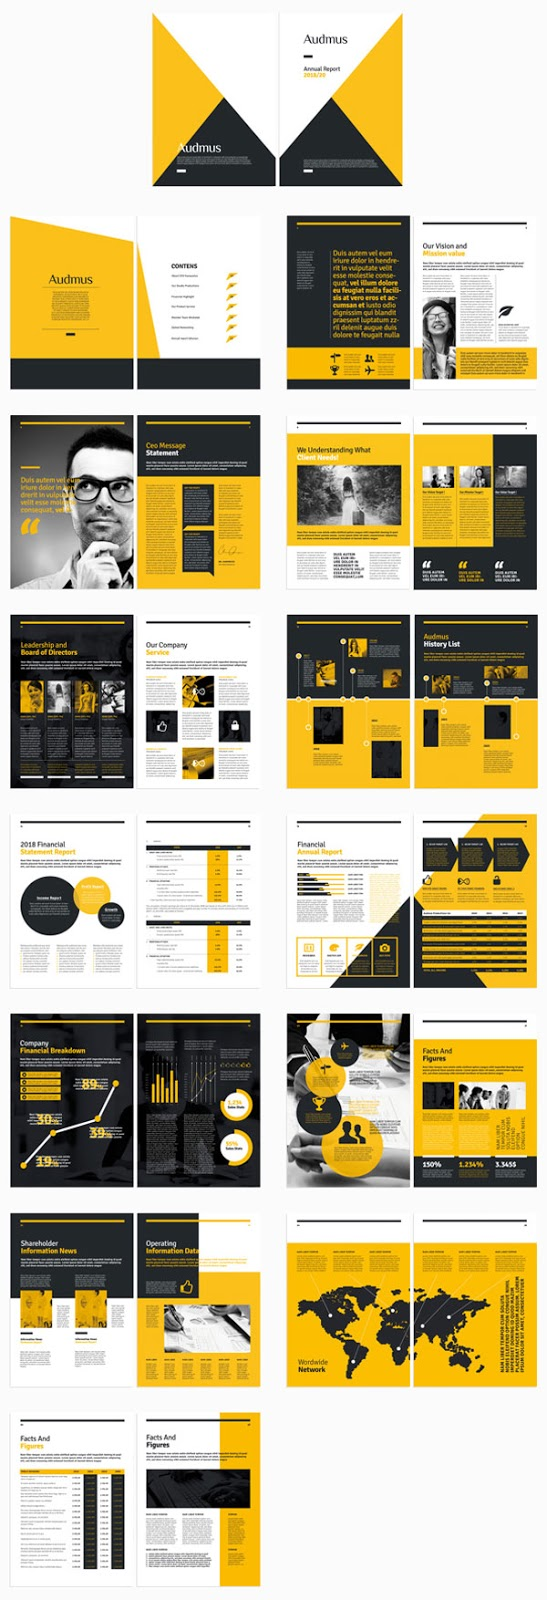 Inspirasi 20+ Desain Brosur dan Katalog Modern - Beautiful Catalogue Design Ideas